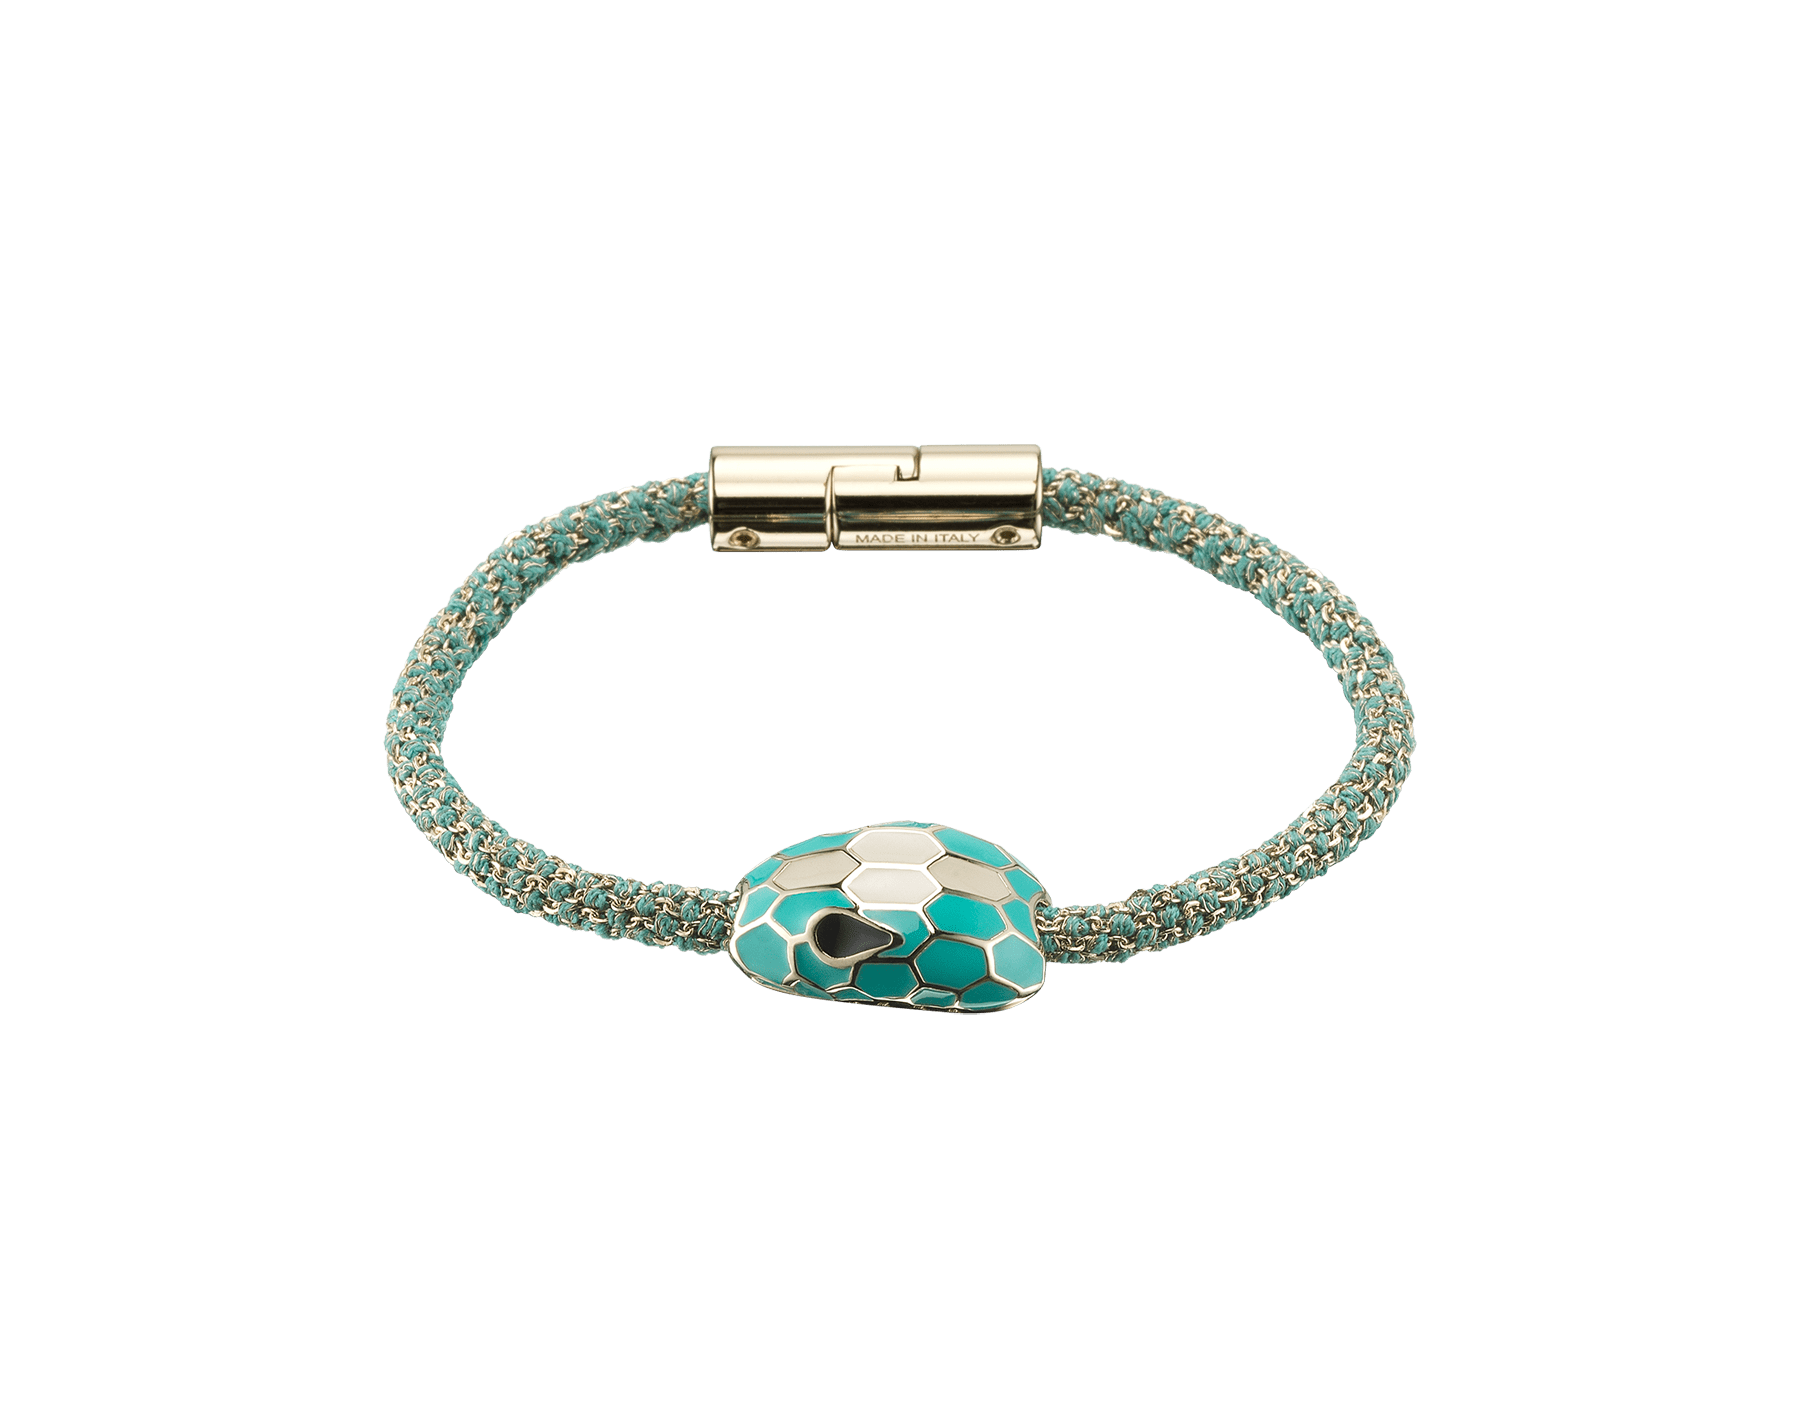 Serpenti Forever bracelet in arctic jade metallic woven silk with an iconic snakehead décor in arctic jade and white enamel. RollingChain-S-AJ image 1